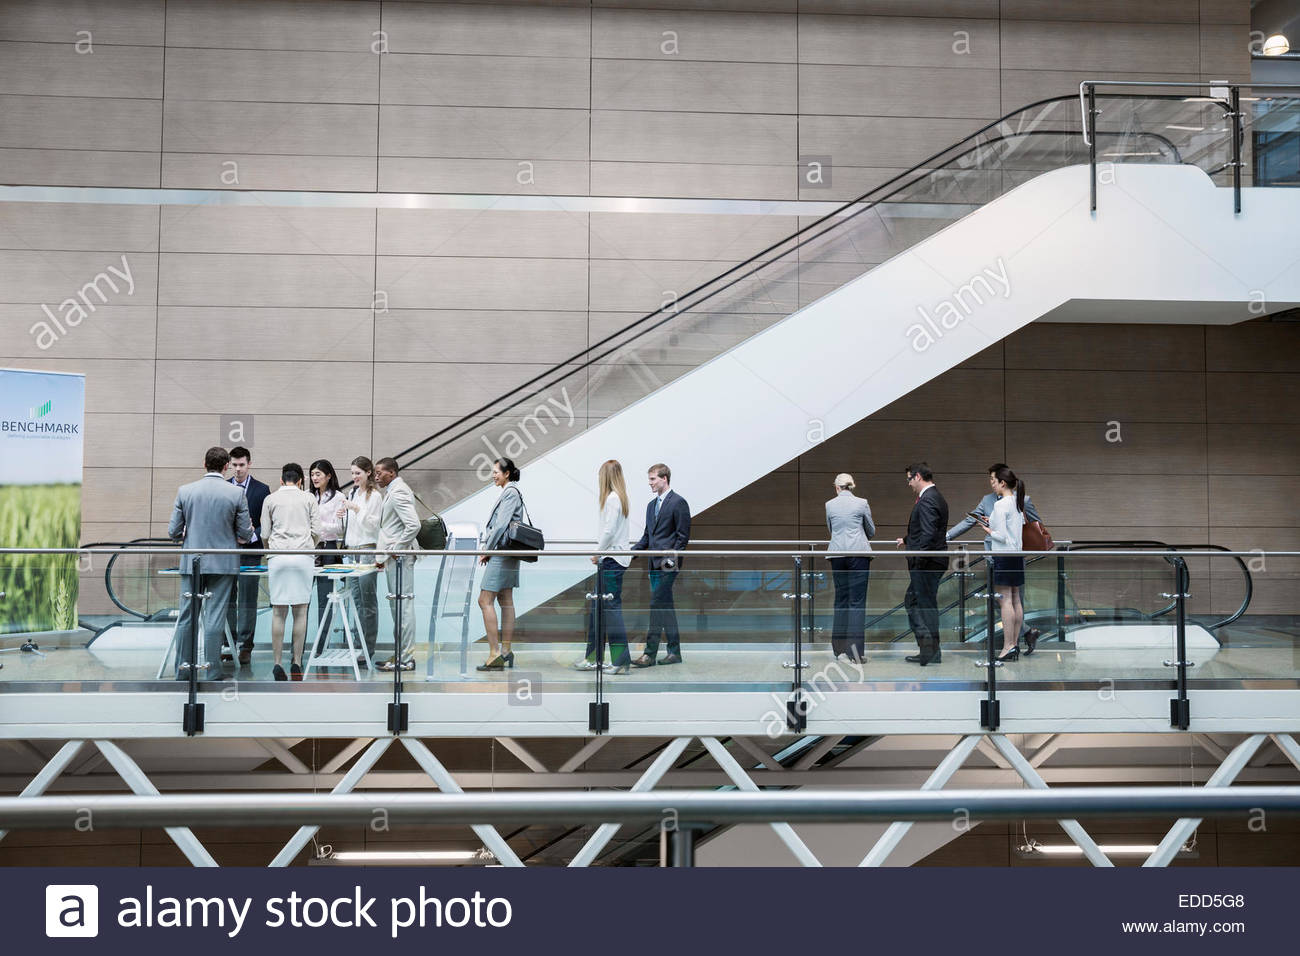 Business people checking in at conference registration table - Stock Image